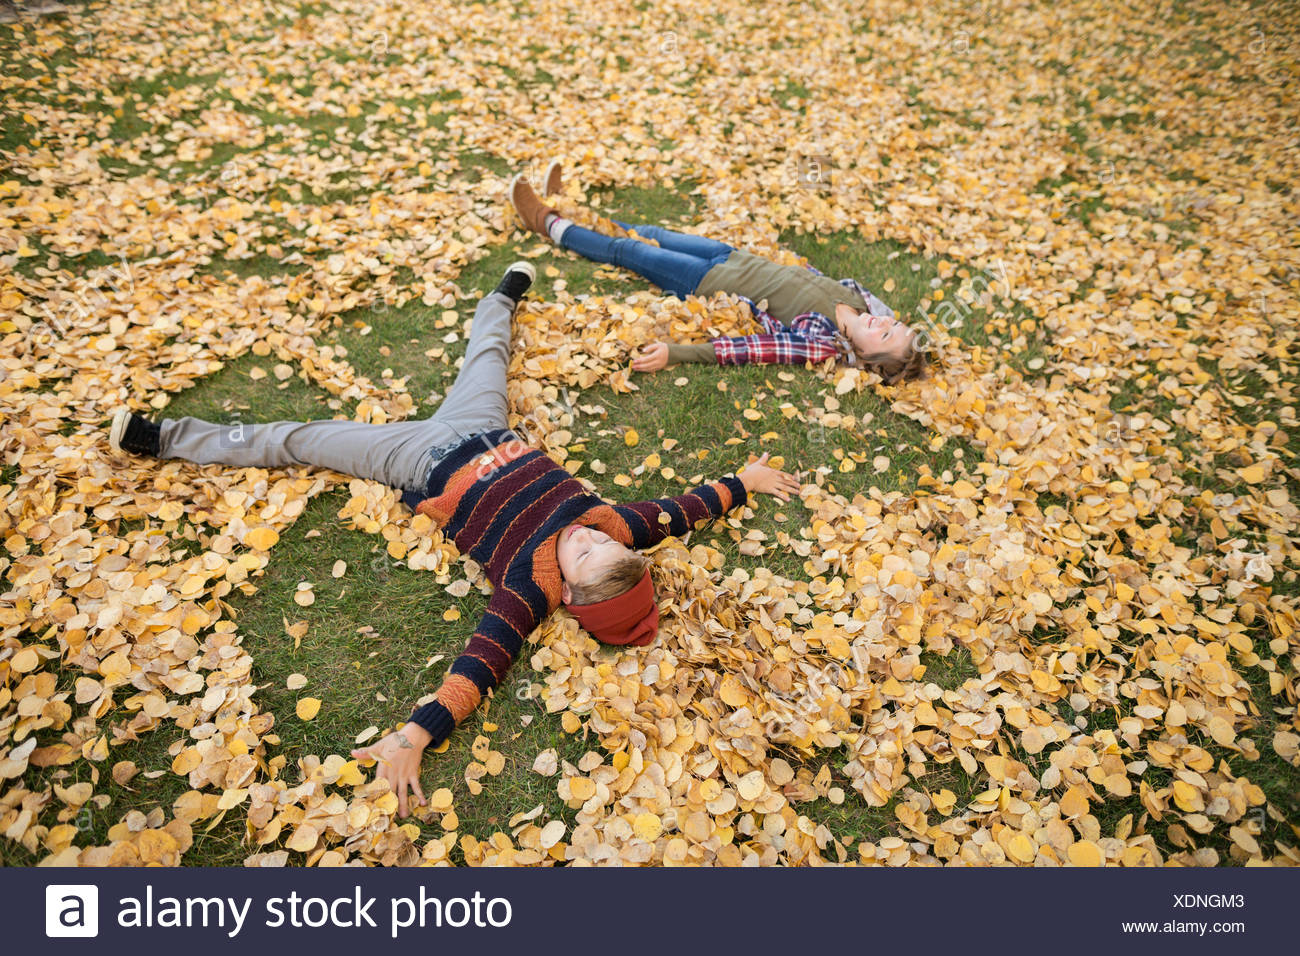 Brother and sister making angels in autumn leaves - Stock Image